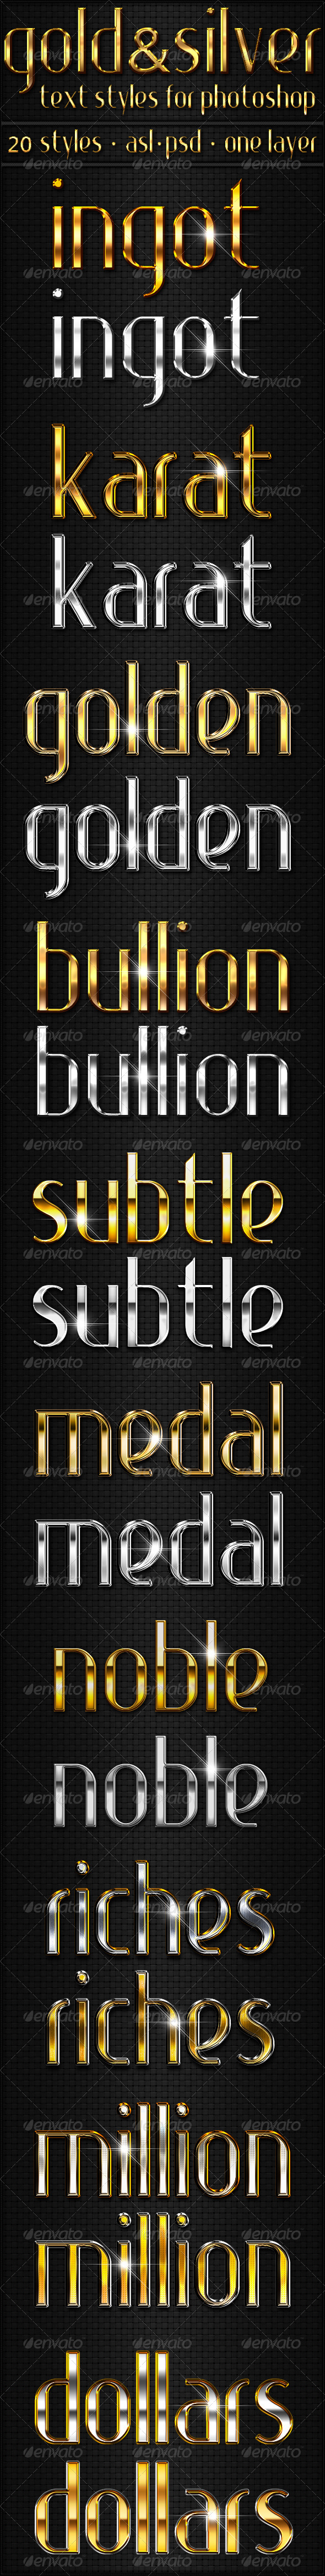 GraphicRiver Gold & Silver Text Styles 3575293